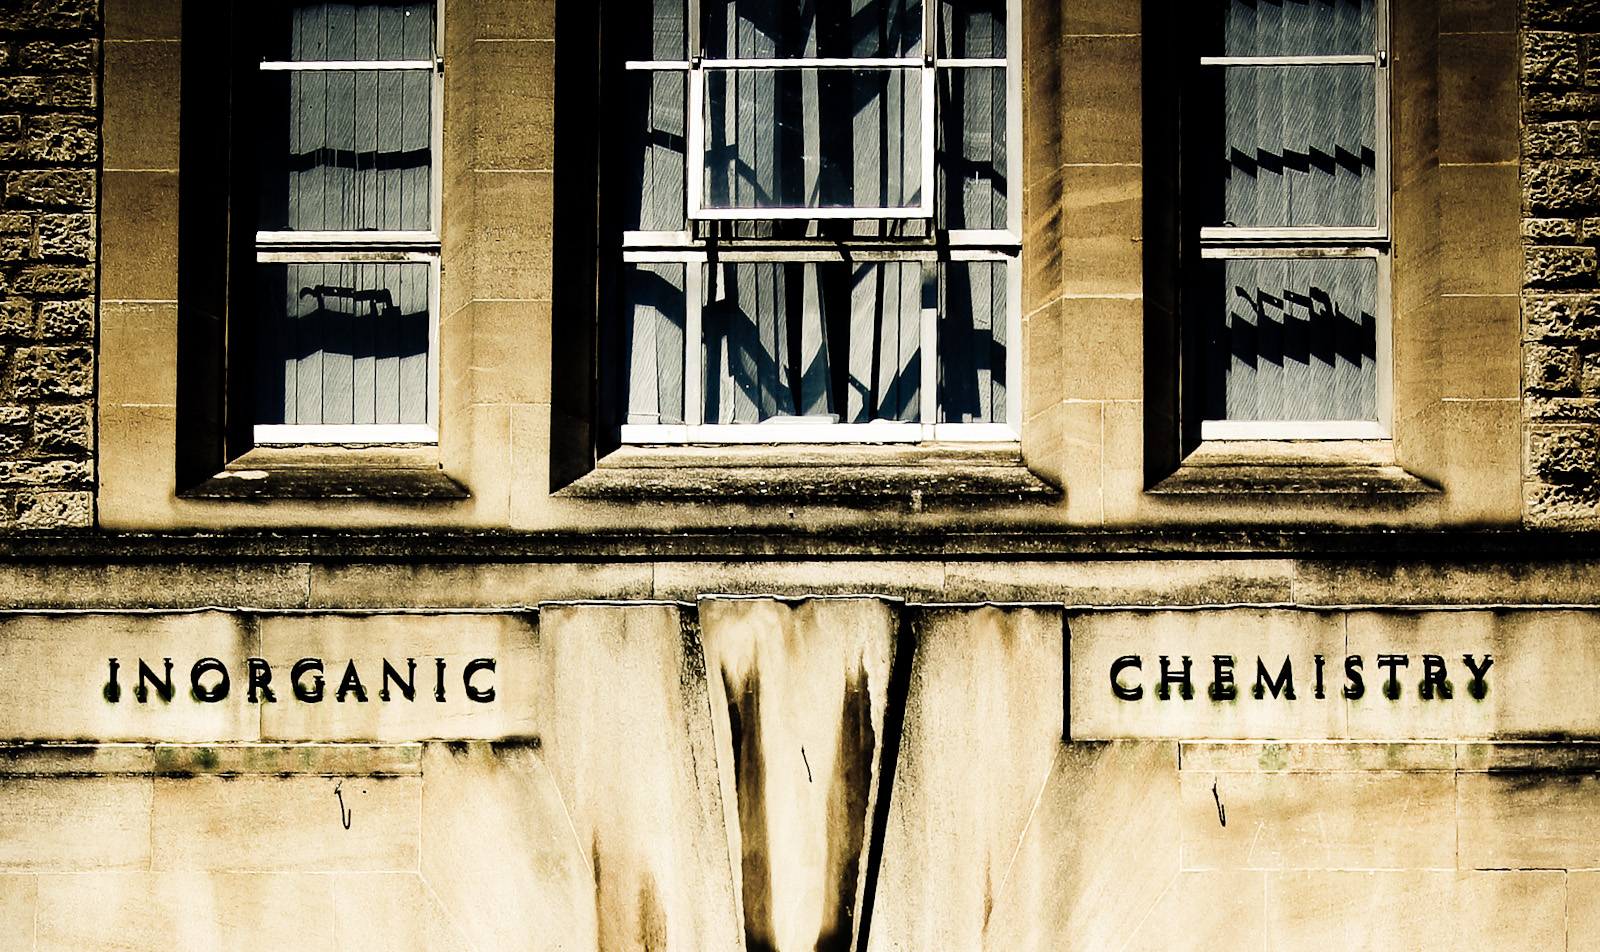 Inorganic Chemistry building at the University of Oxford. Photo copyright Al Power.